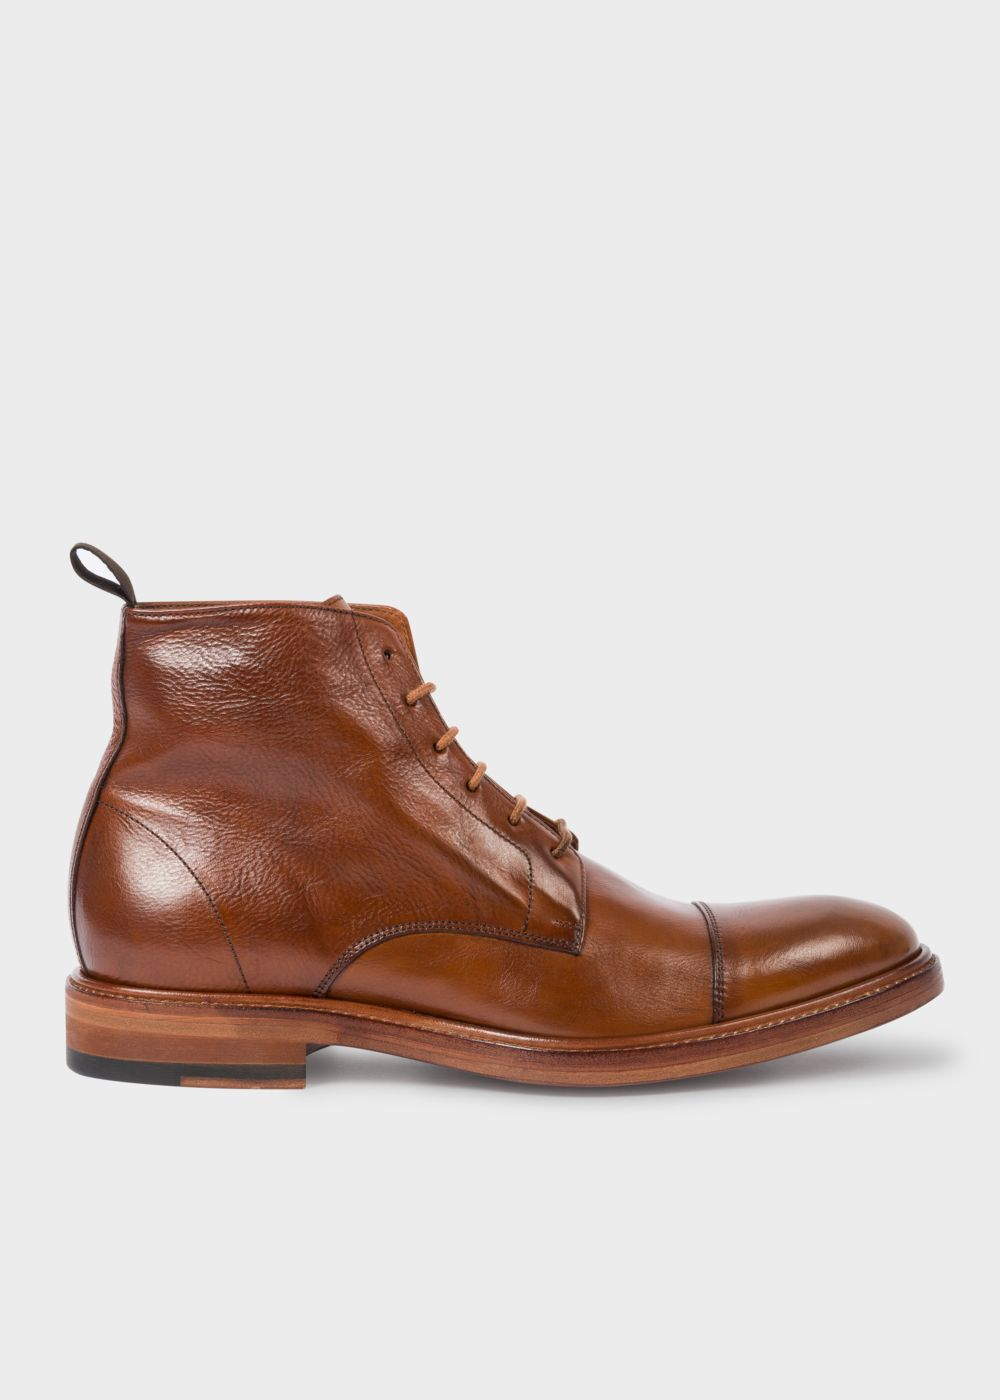 Paul Smith Men's Dip-Dyed Tan Calf Leather 'Jarman' Boots